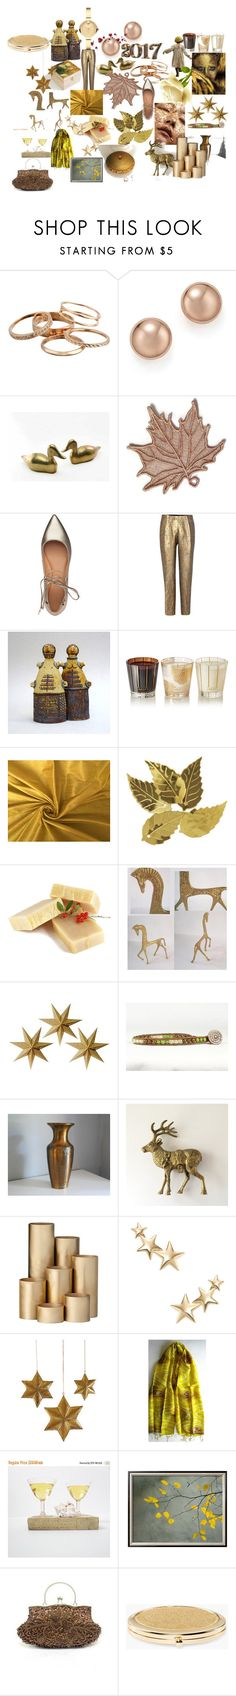 """""""GOLD"""" by talma-vardi on Polyvore featuring Kendra Scott, Bloomingdale's, Sigerson Morrison, Dries Van Noten, Nest Fragrances, JEM, Darice, MCM, LumaBase and ferm LIVING"""